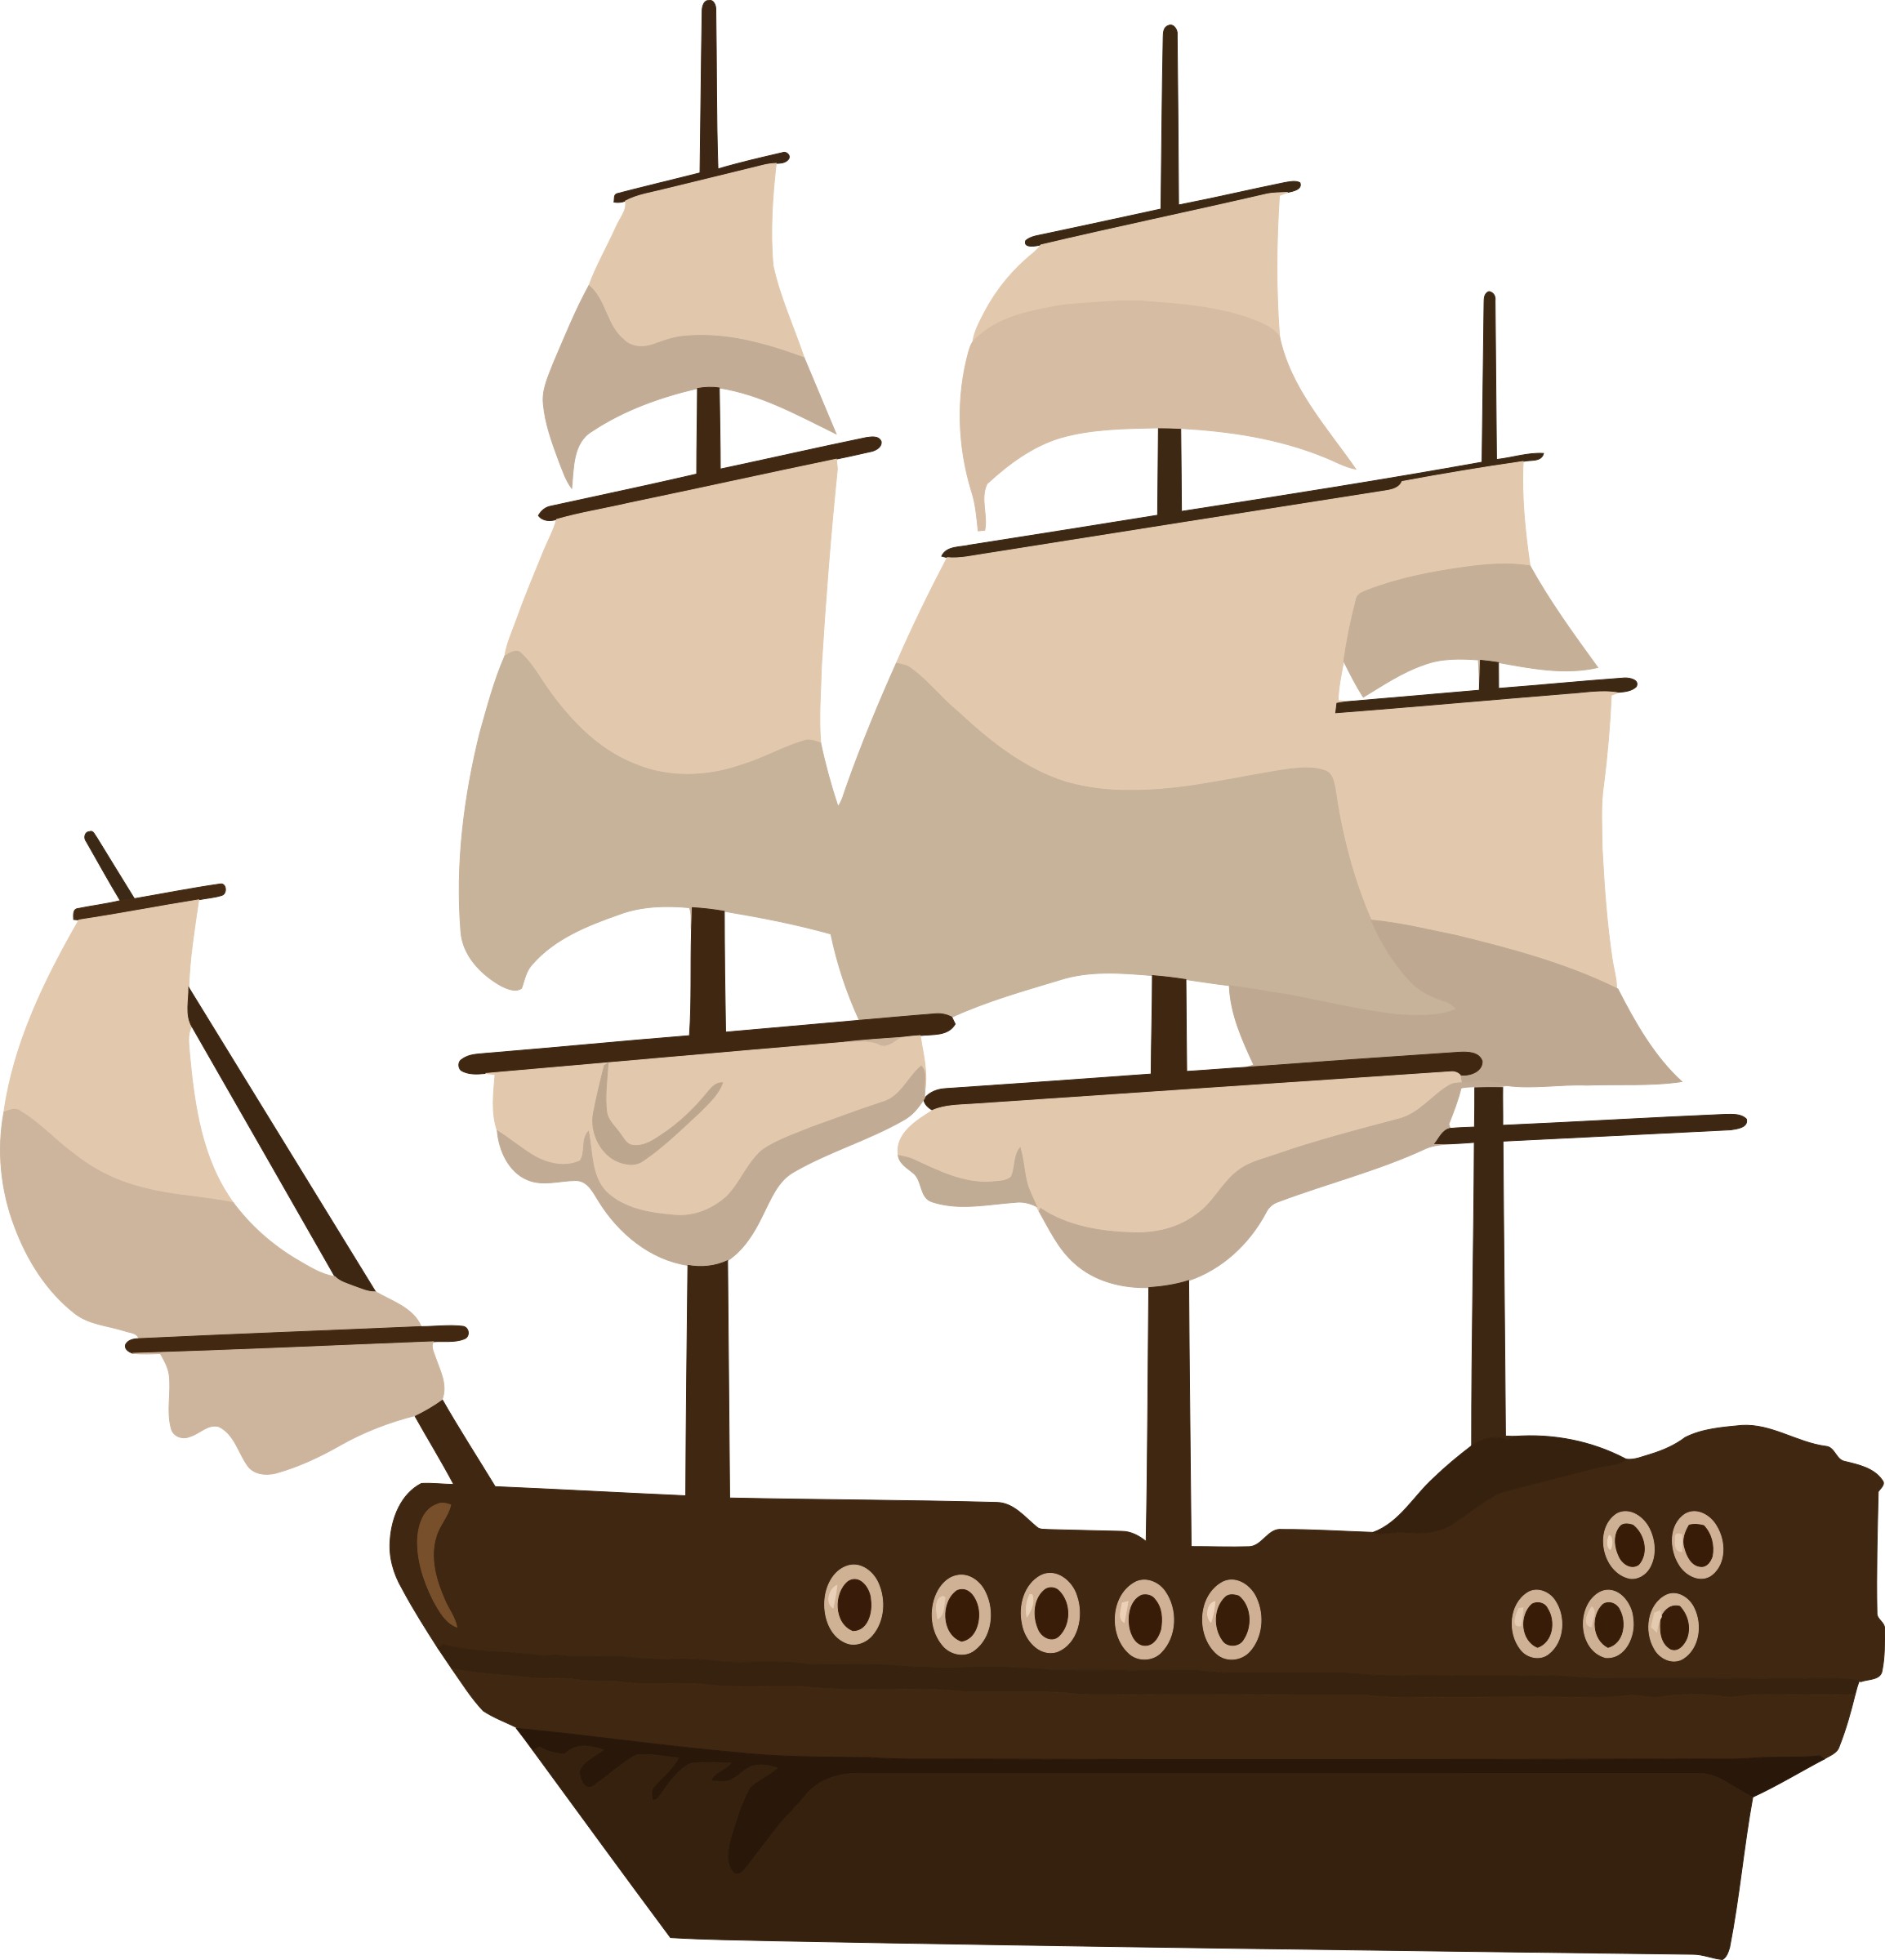 Clipart - pirate ship